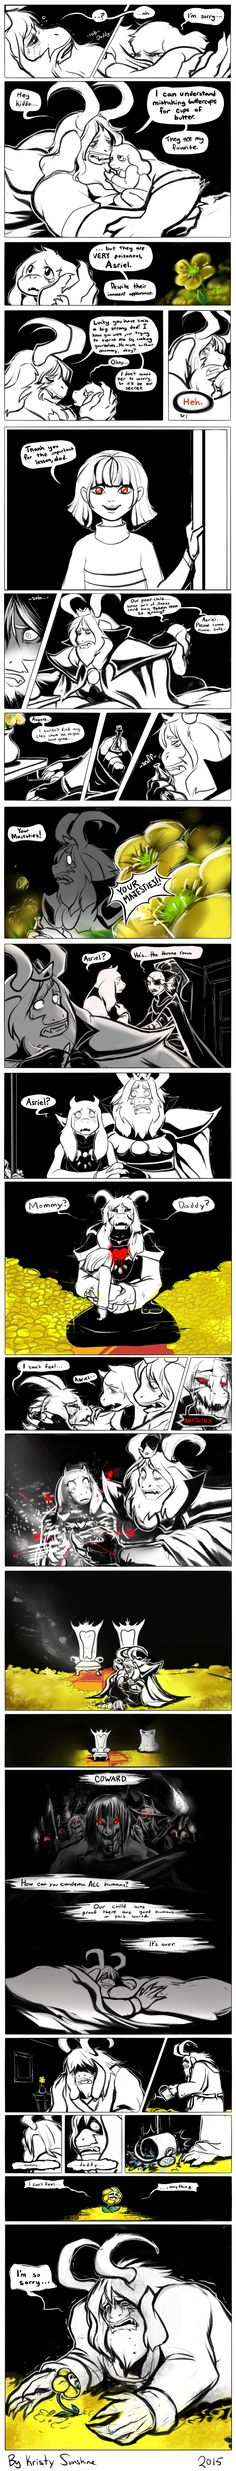 That's rough, buddy (UNDERTALE SPOILERS) by peachiekeenie.deviantart.com on @DeviantArt